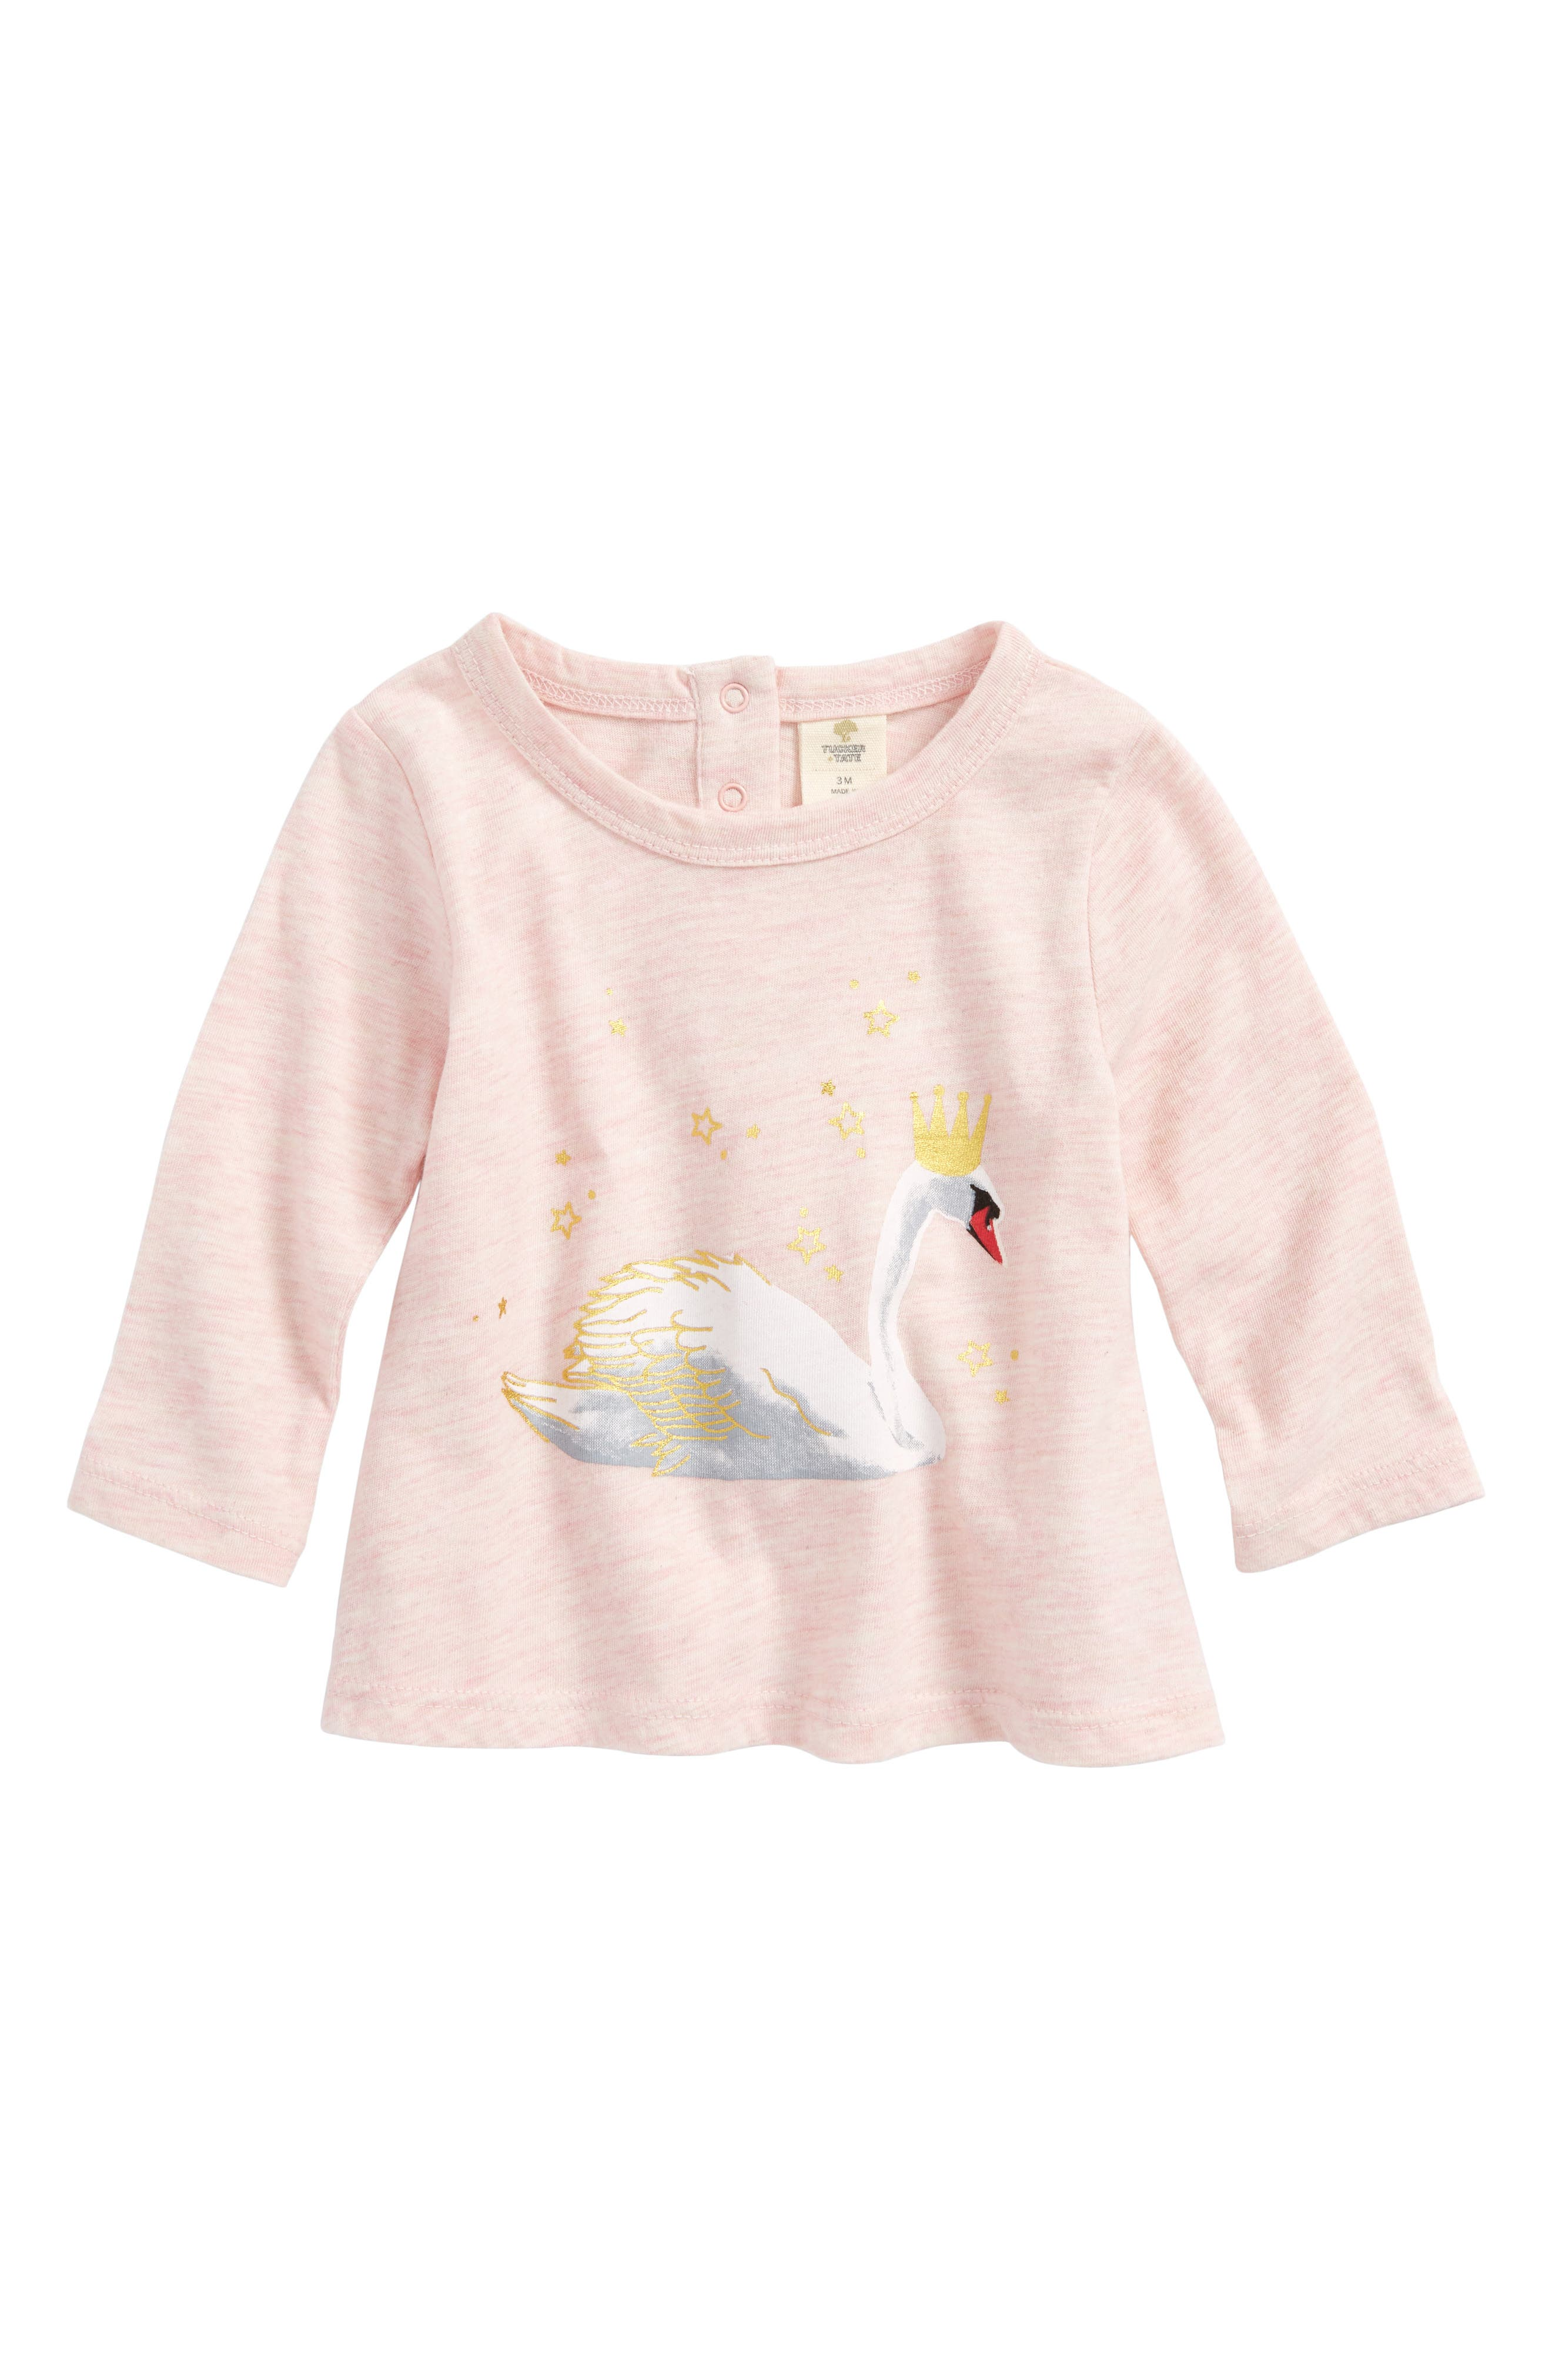 Foil Print Graphic Tee,                         Main,                         color, Pink Silver Htr Pretty Swan